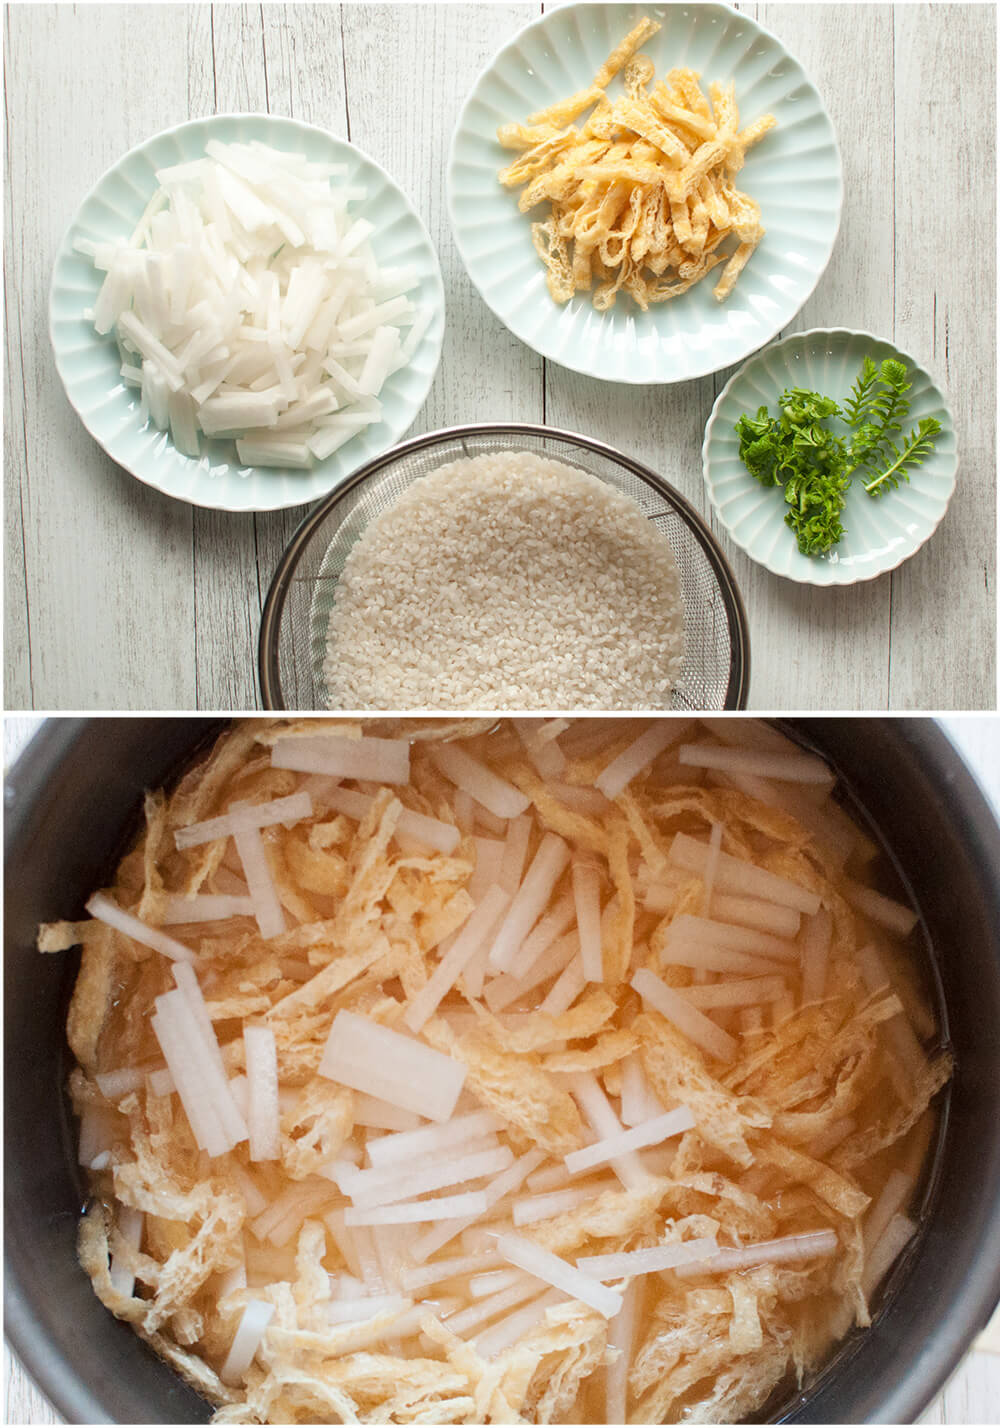 The combination of rice, daikon (white radish) and aburaage (fried thin tofu) in daikon gohan is just perfect. This is another mixed rice recipe similar to Shimeji Gohan (rice with Shimeji Mushrooms) but the soy sauce flavour of the rice is slightly stronger. Use konbu dashi stock to make it 100% vegetarian.